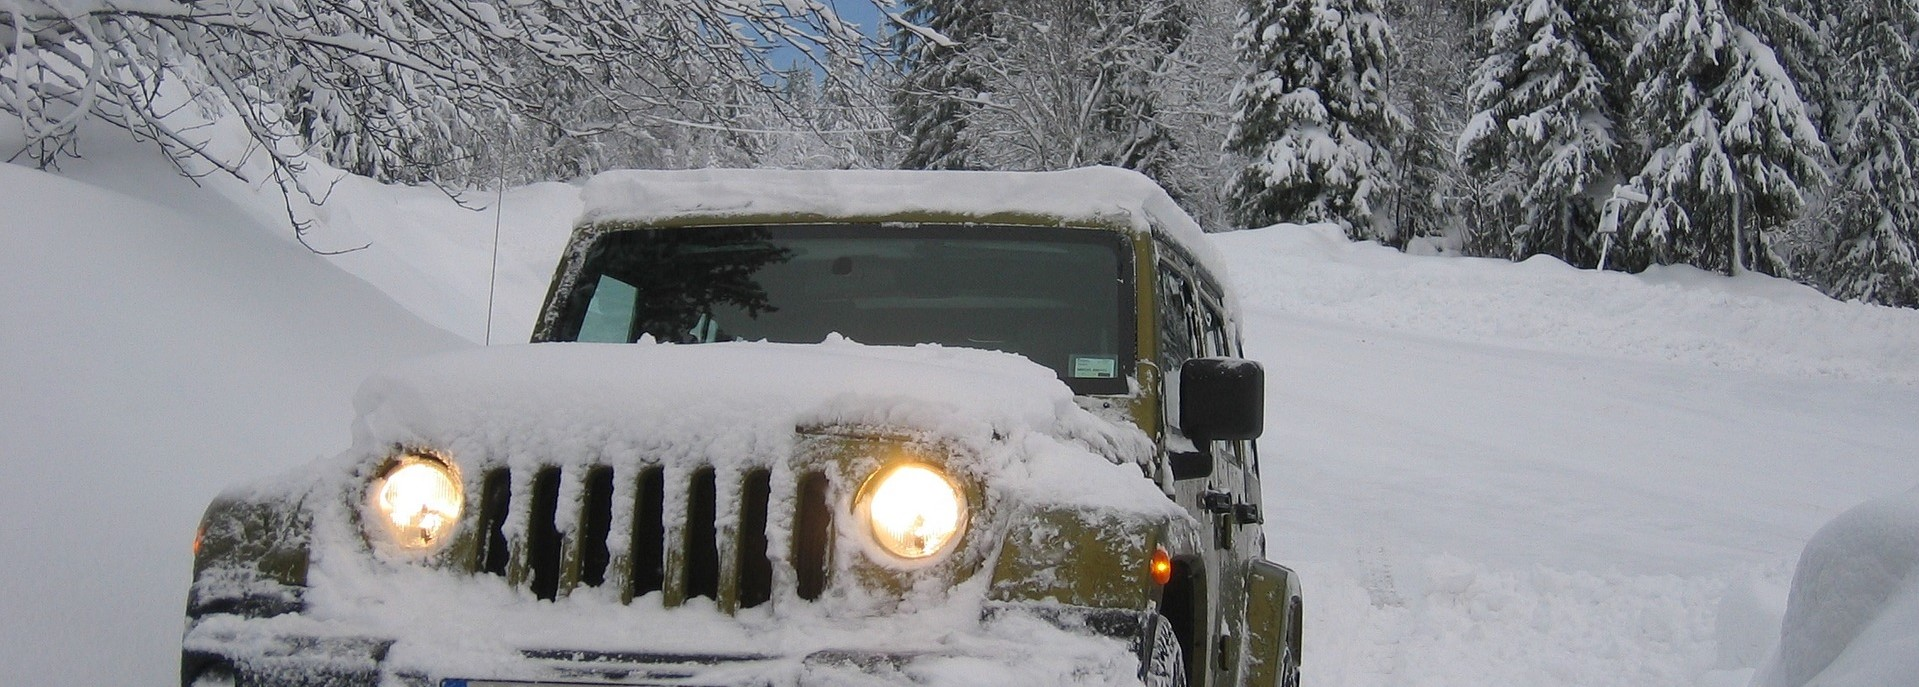 Jeep on an Outdoor Snow | Breast Cancer Car Donations